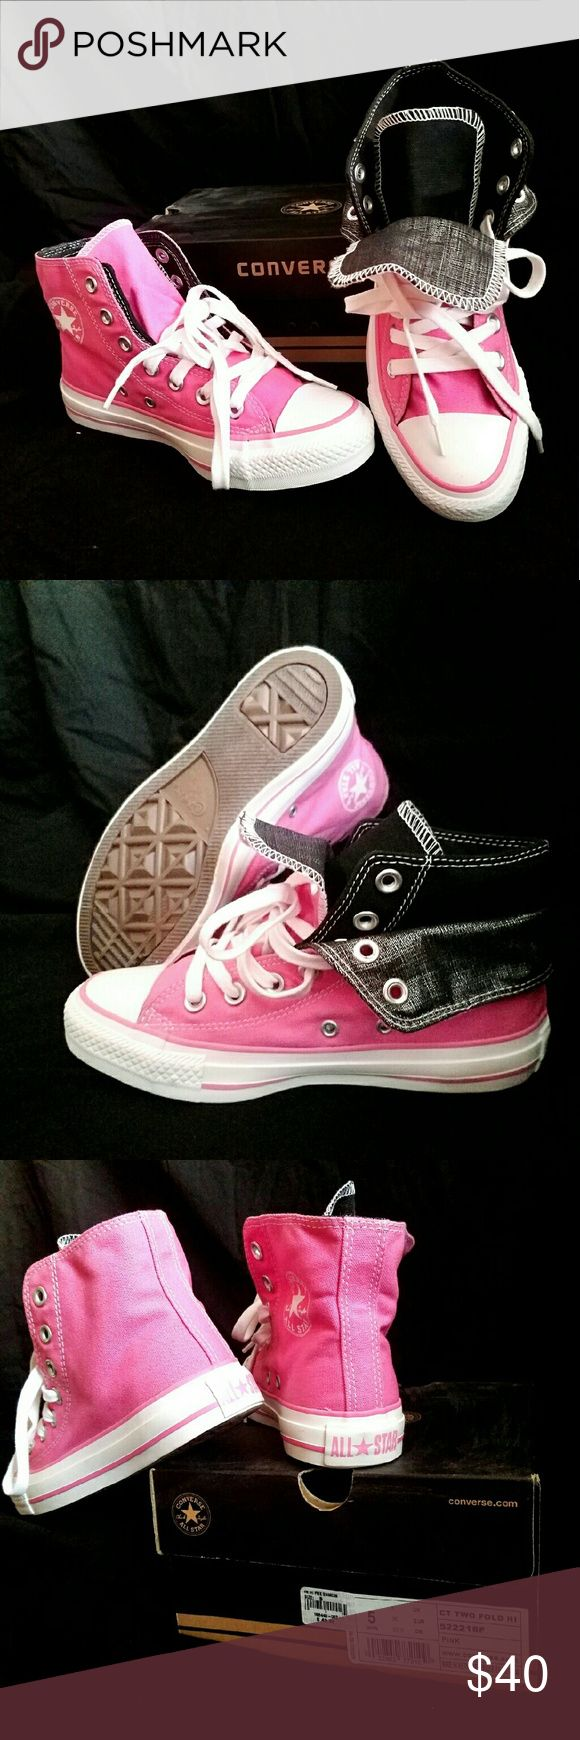 Two Fold High Top Converse Pink and black double fold styling.  Brand New.  Never worn. Converse Shoes Sneakers